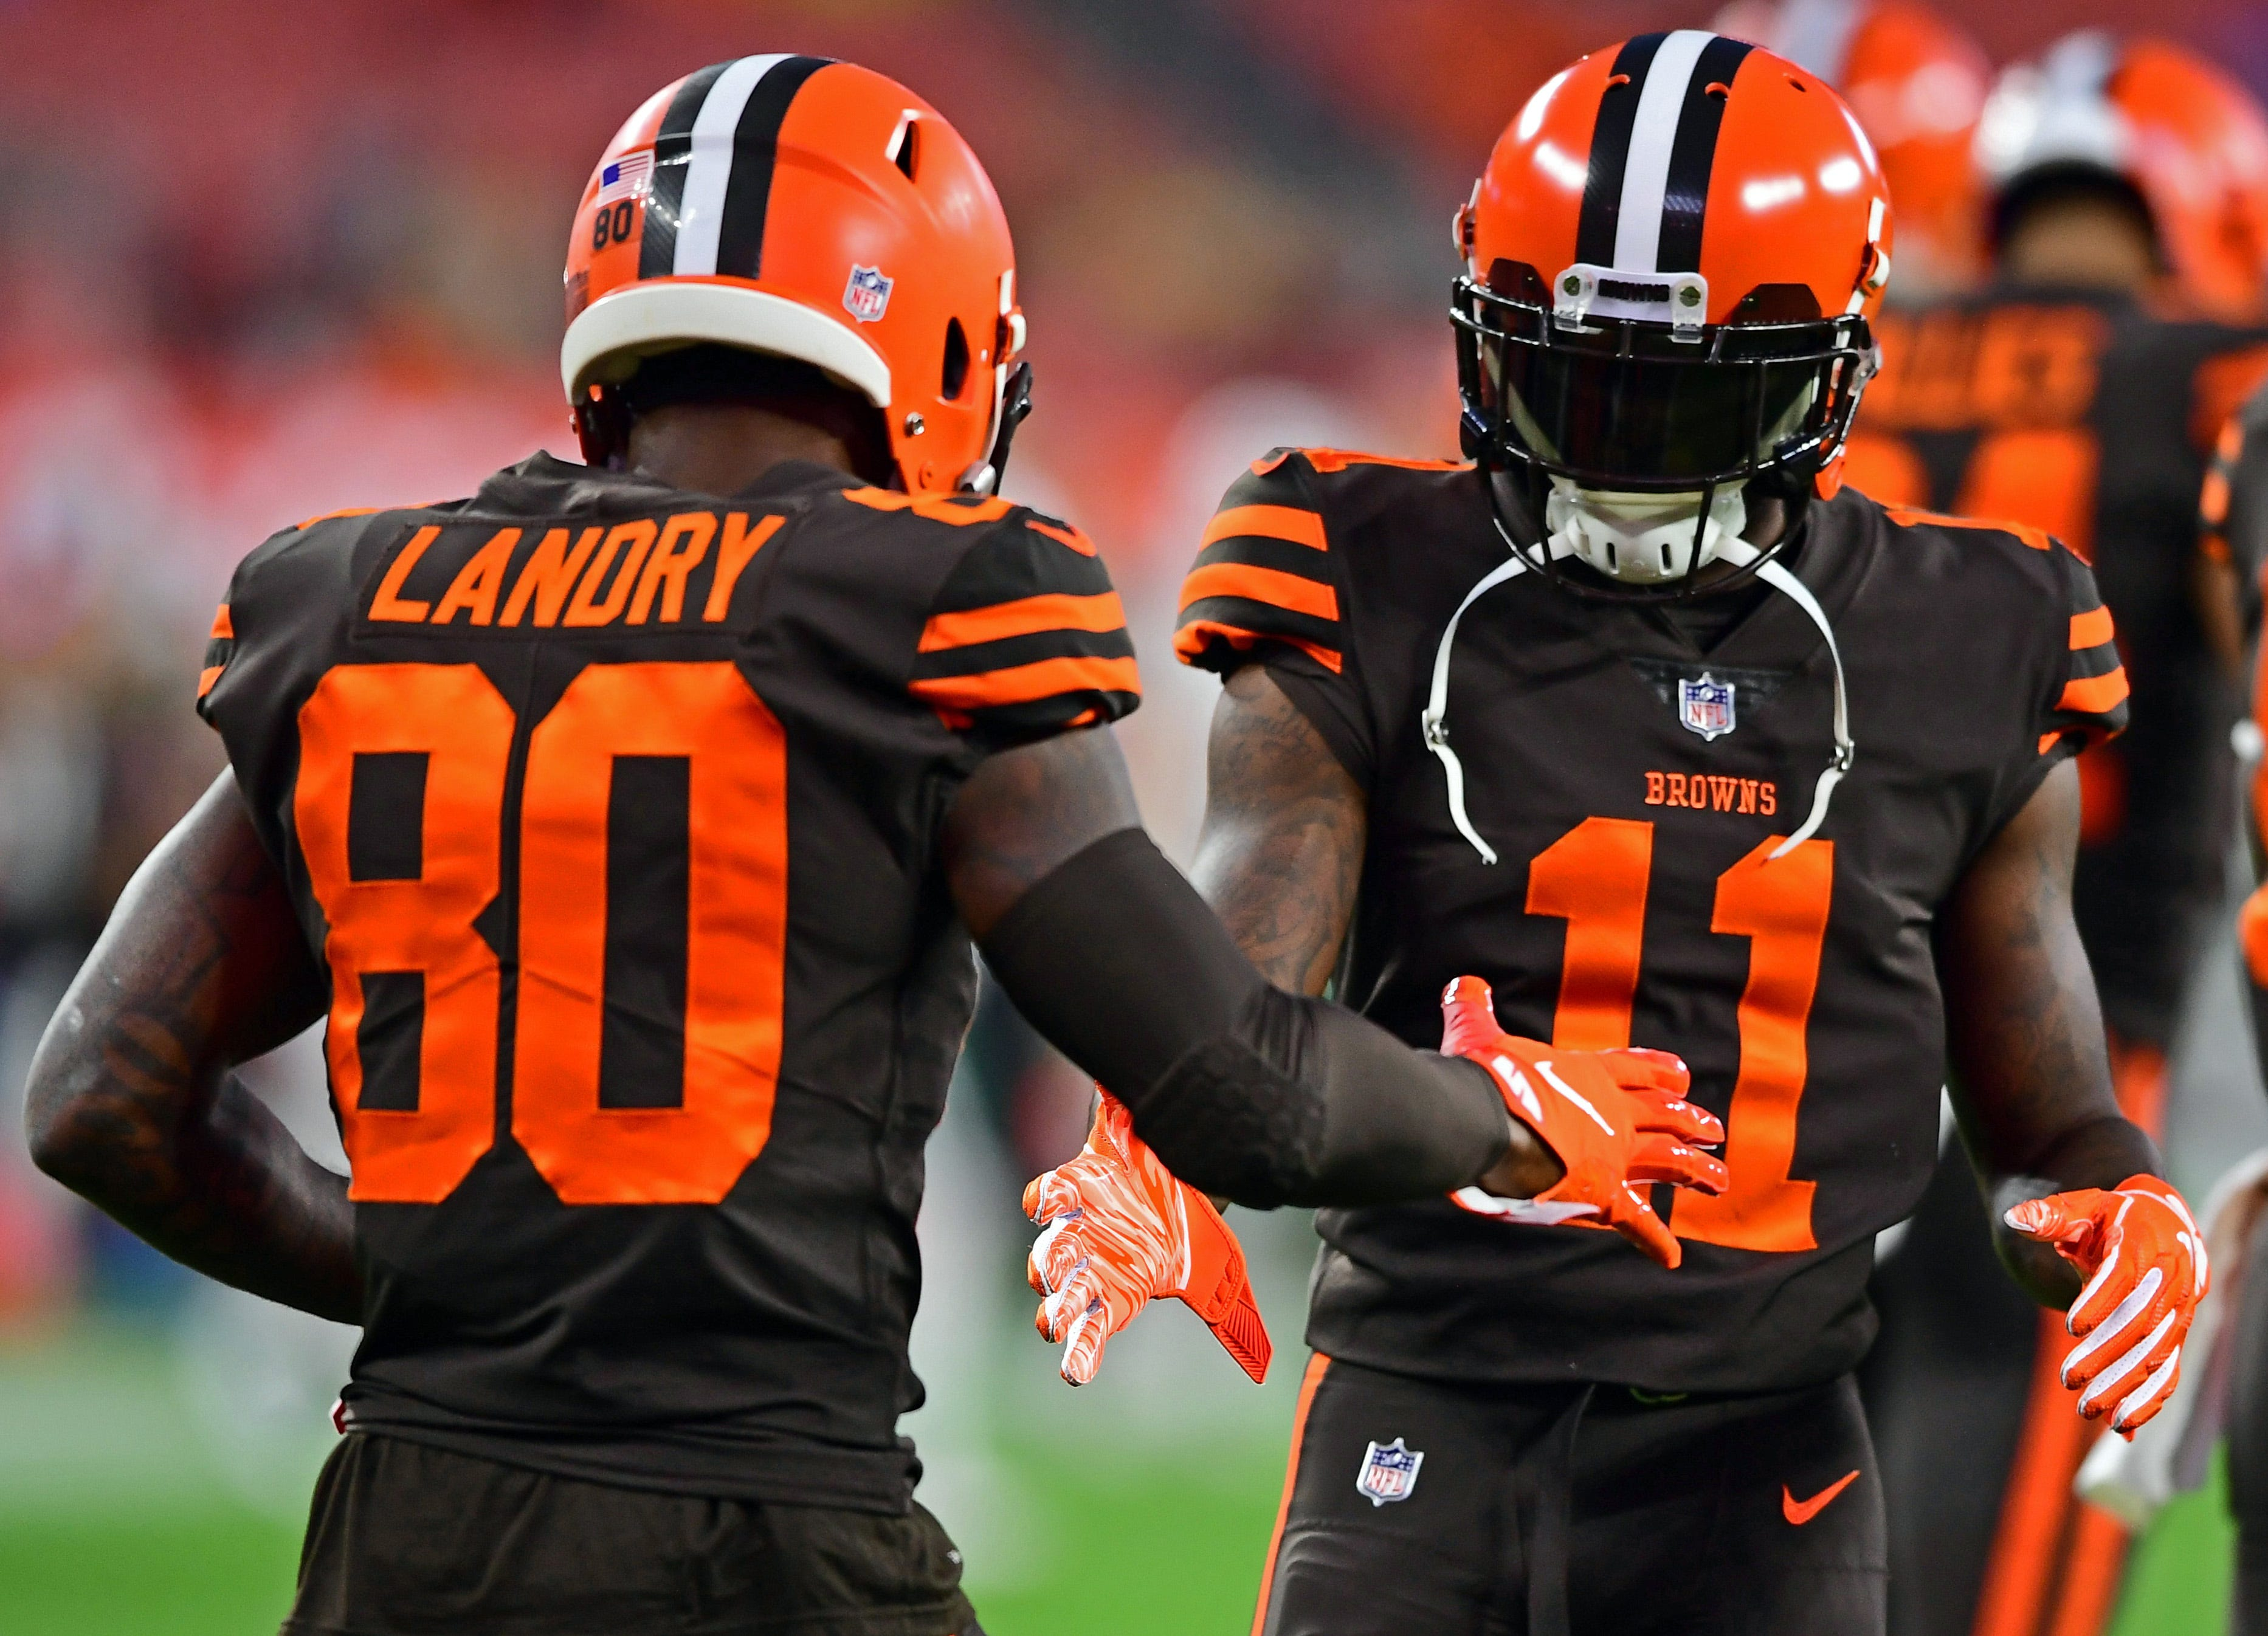 Cleveland Browns debut Color Rush uniforms after years of waiting